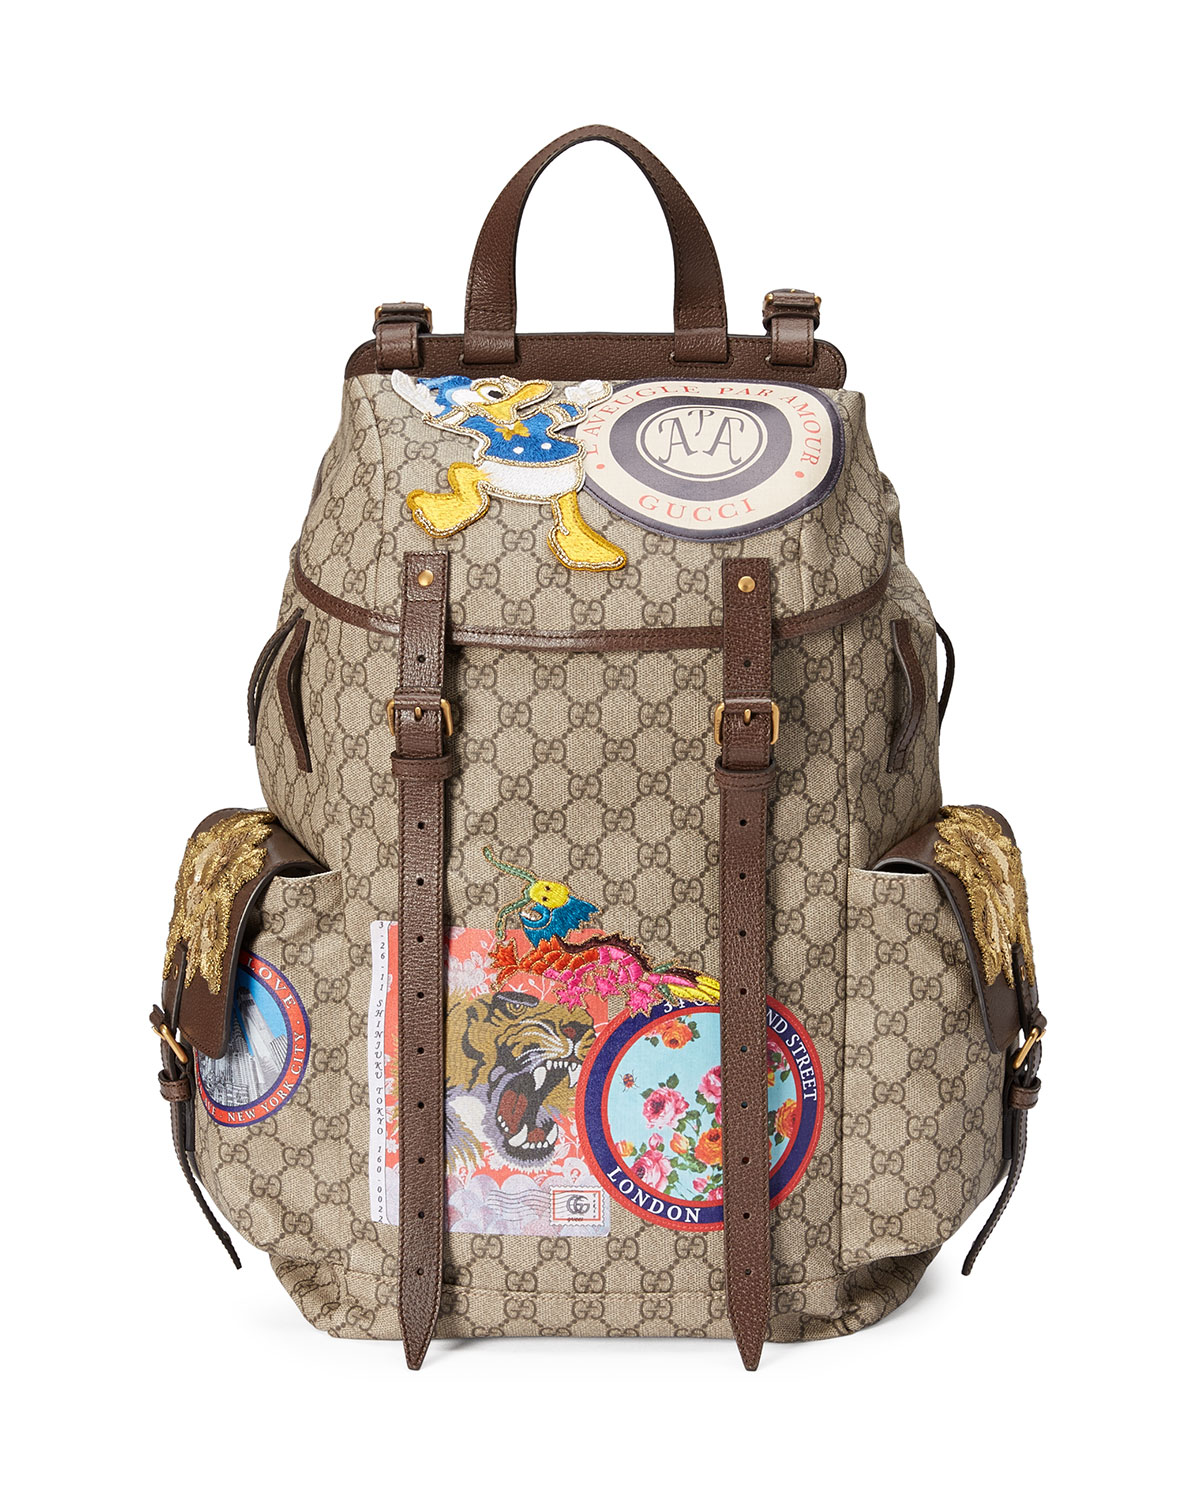 022548e96af Gucci Soft GG Supreme Backpack with Patches